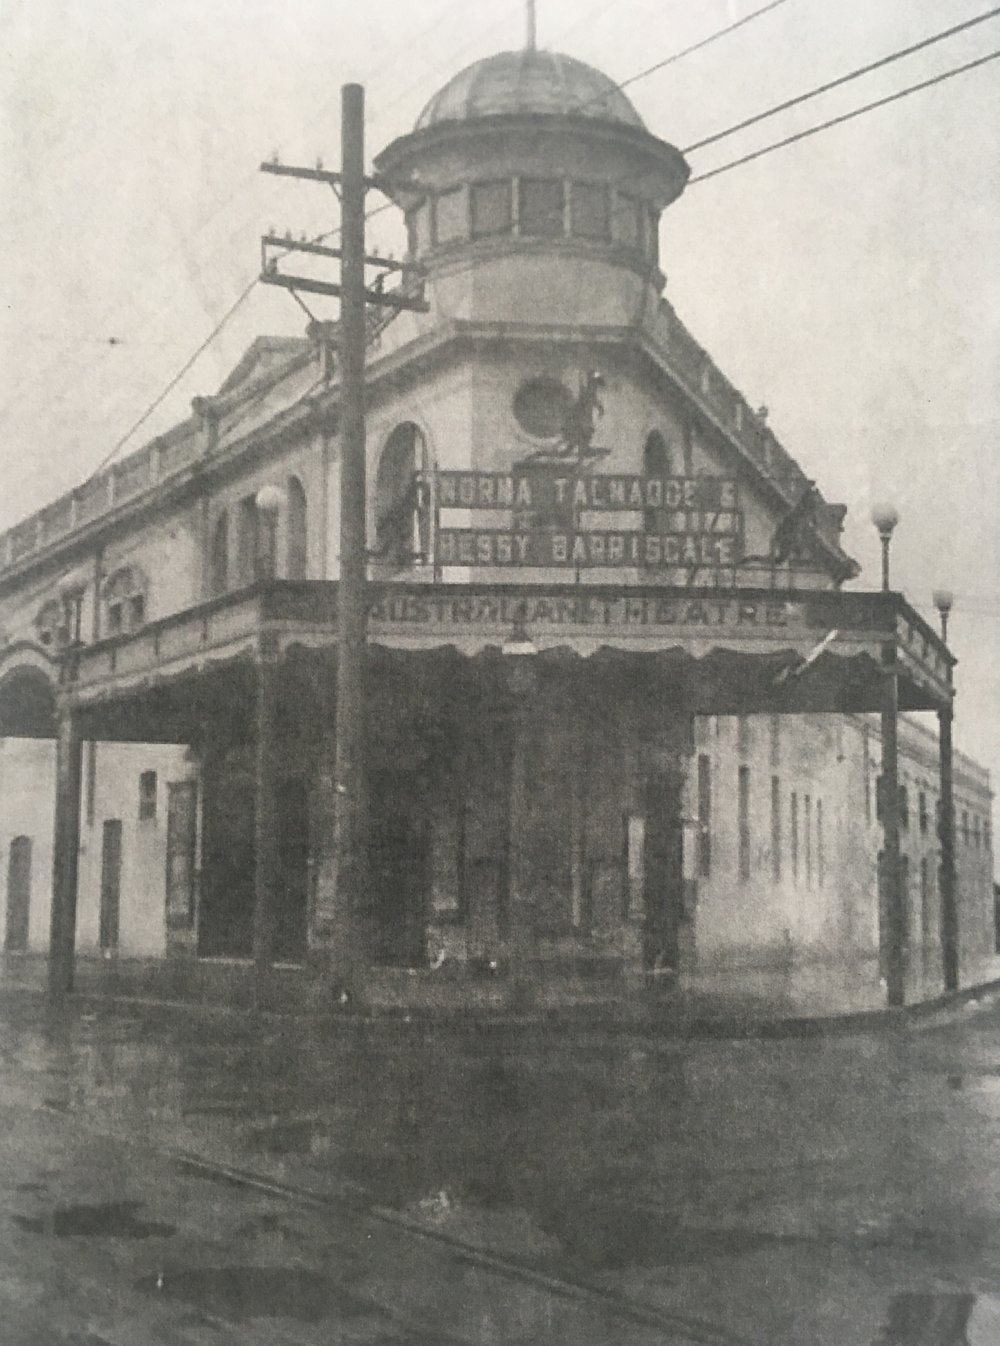 The Australian Theatre opened in Mosman in 1913.